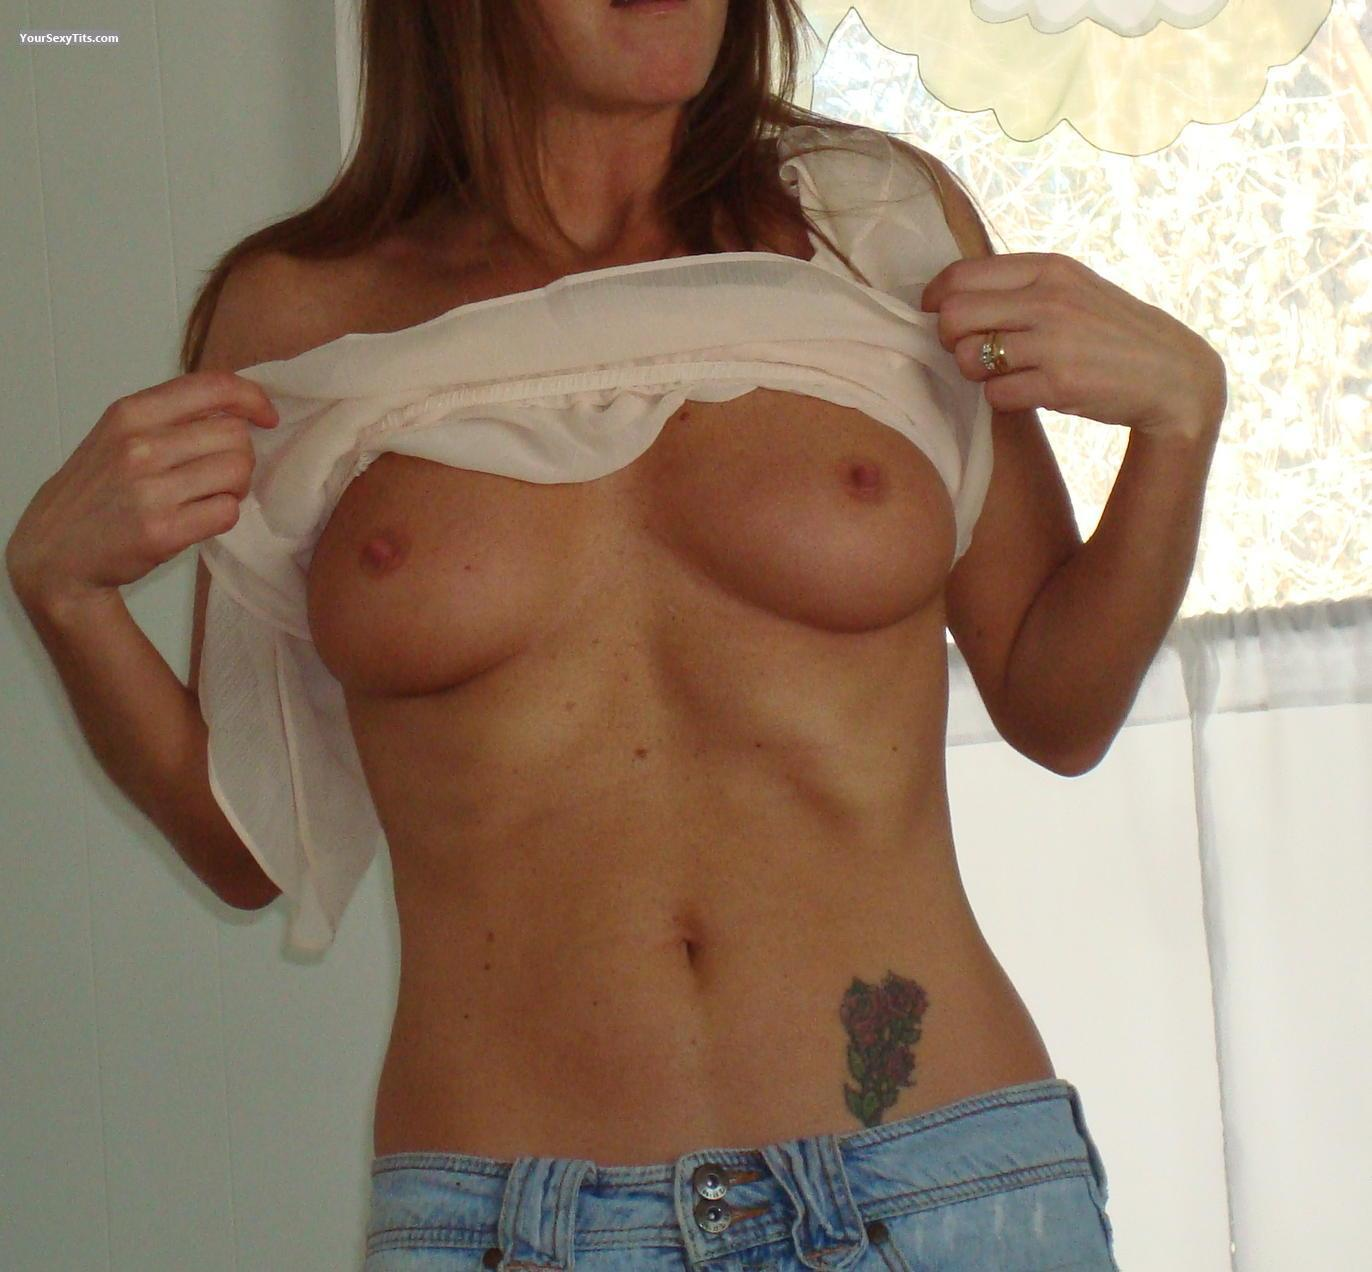 Tit Flash: Medium Tits - Dirty Girl from United States